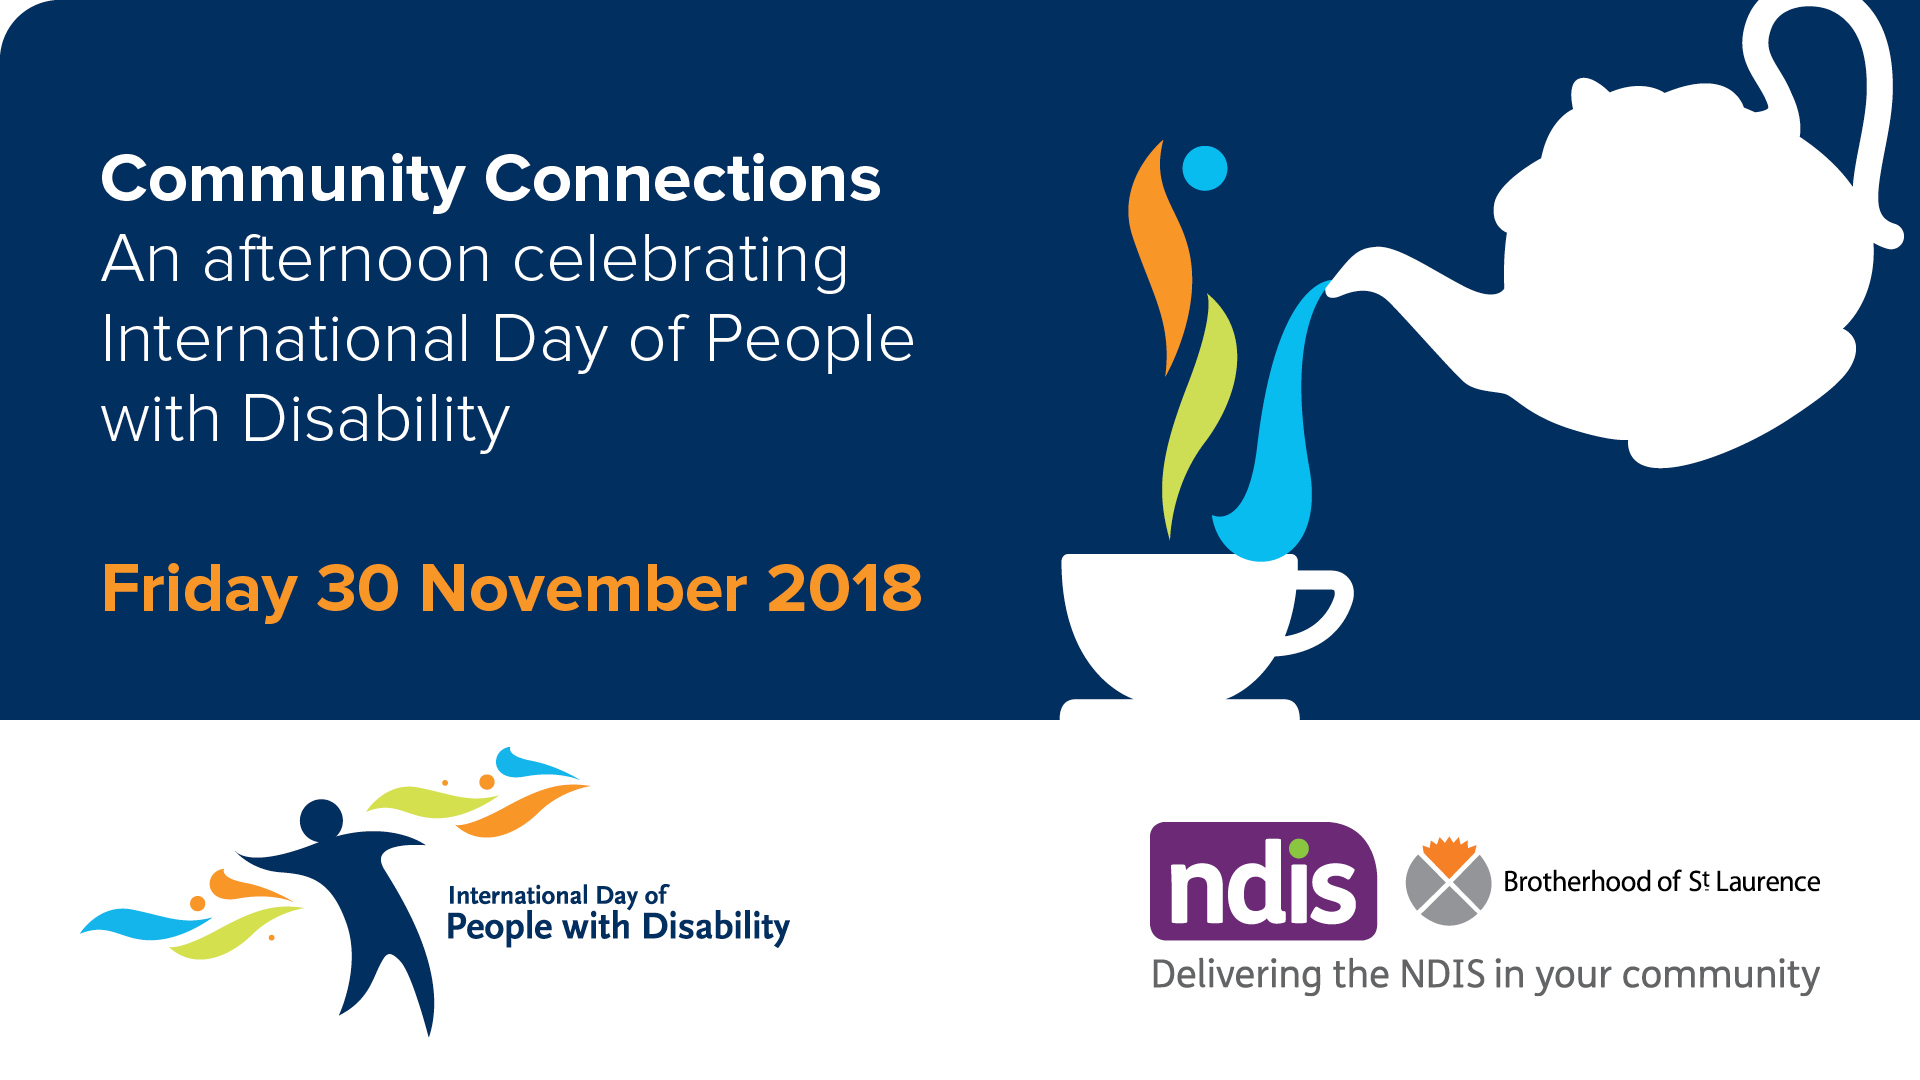 """Banner for Community Connections featuring an illustration of a teapot pouring tea into a tea cup. Text says """"Community Connections. An afternoon celebrating International Day of People with Disability. Friday 30 November 2018."""""""